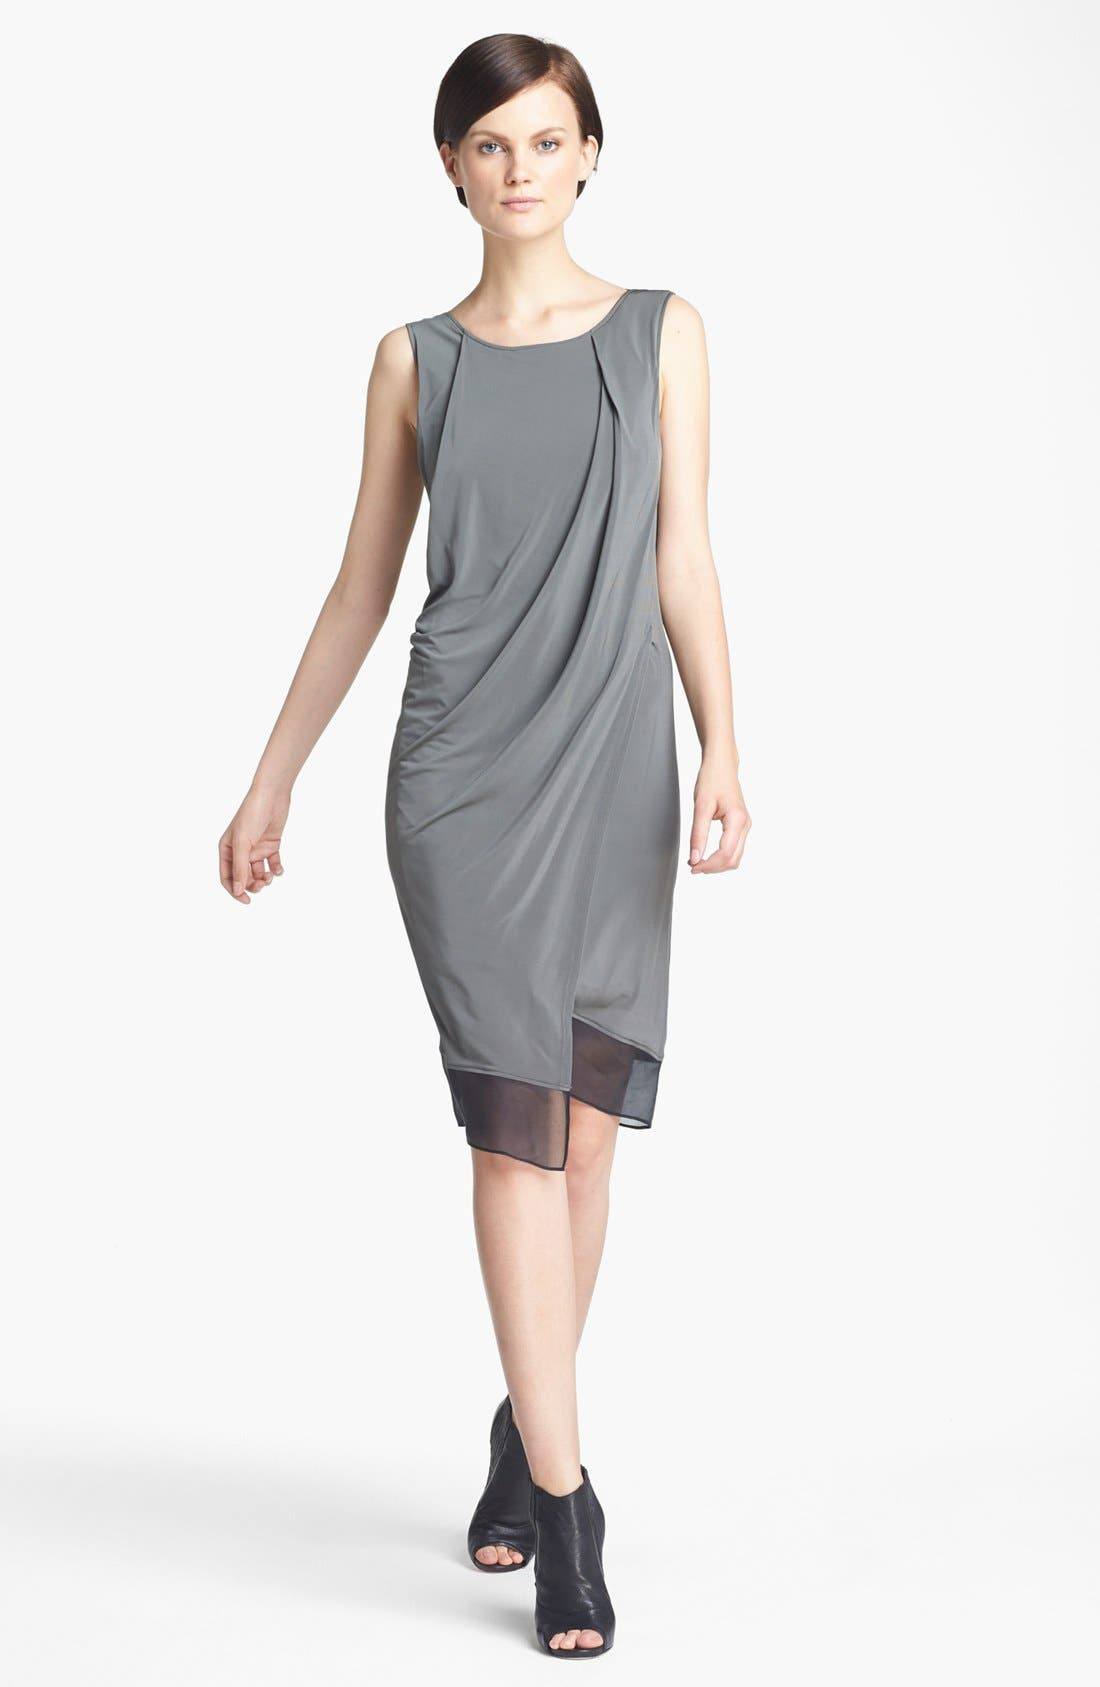 Main Image - Helmut Lang 'Melody' Sleeveless Dress